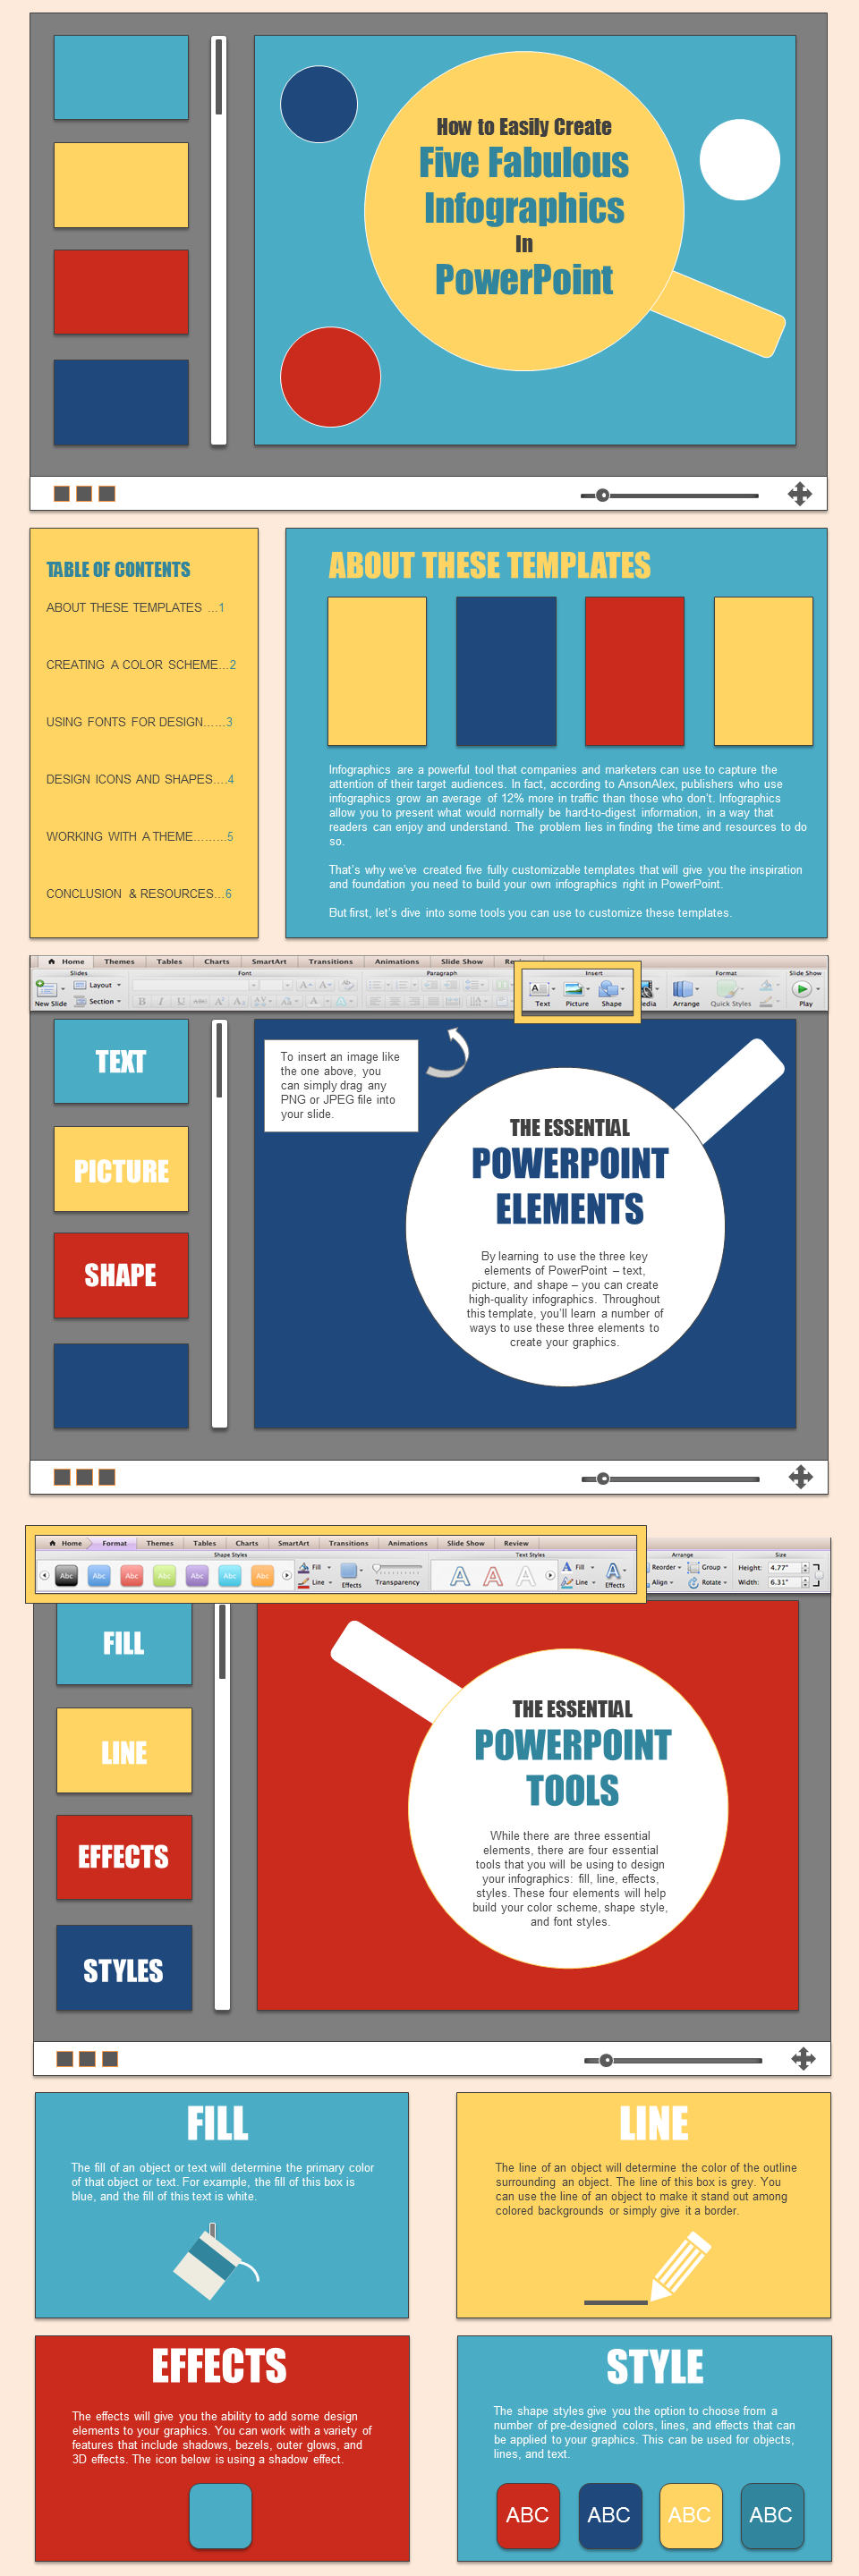 PowerPoint Infographic Creation Best Practices [Infographic]